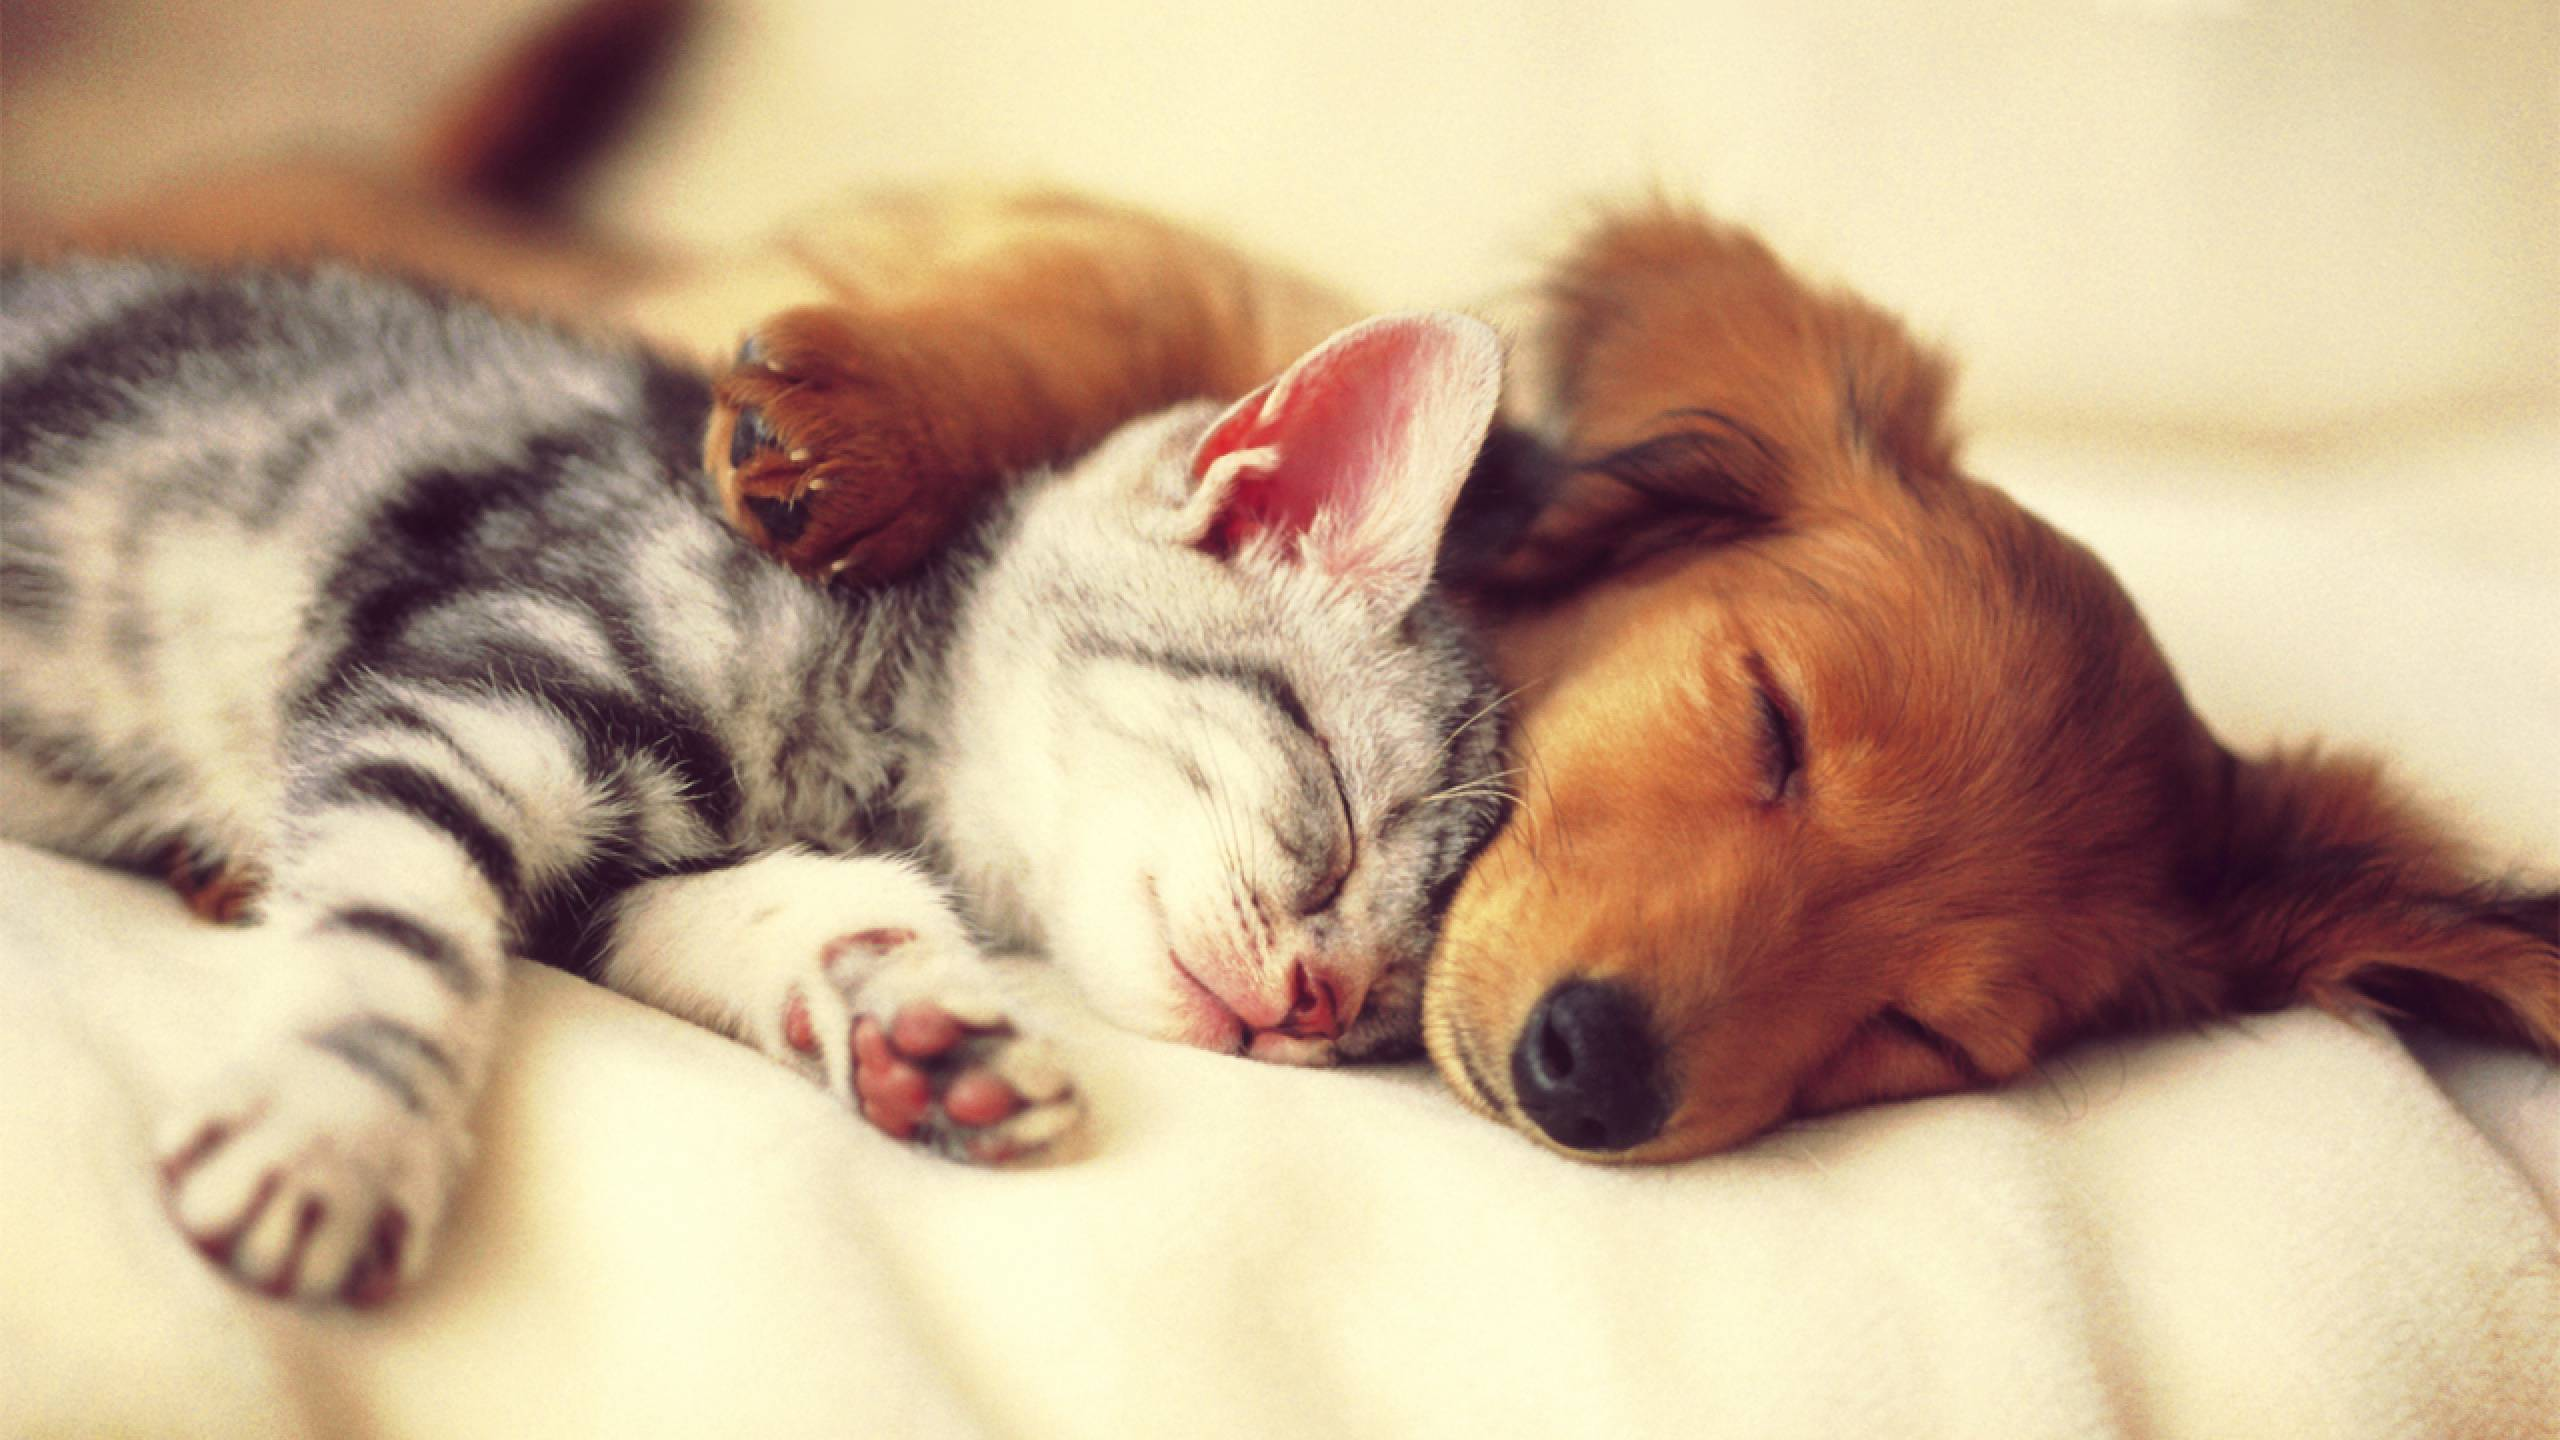 Cat and dog sleeping next to each other, hugged